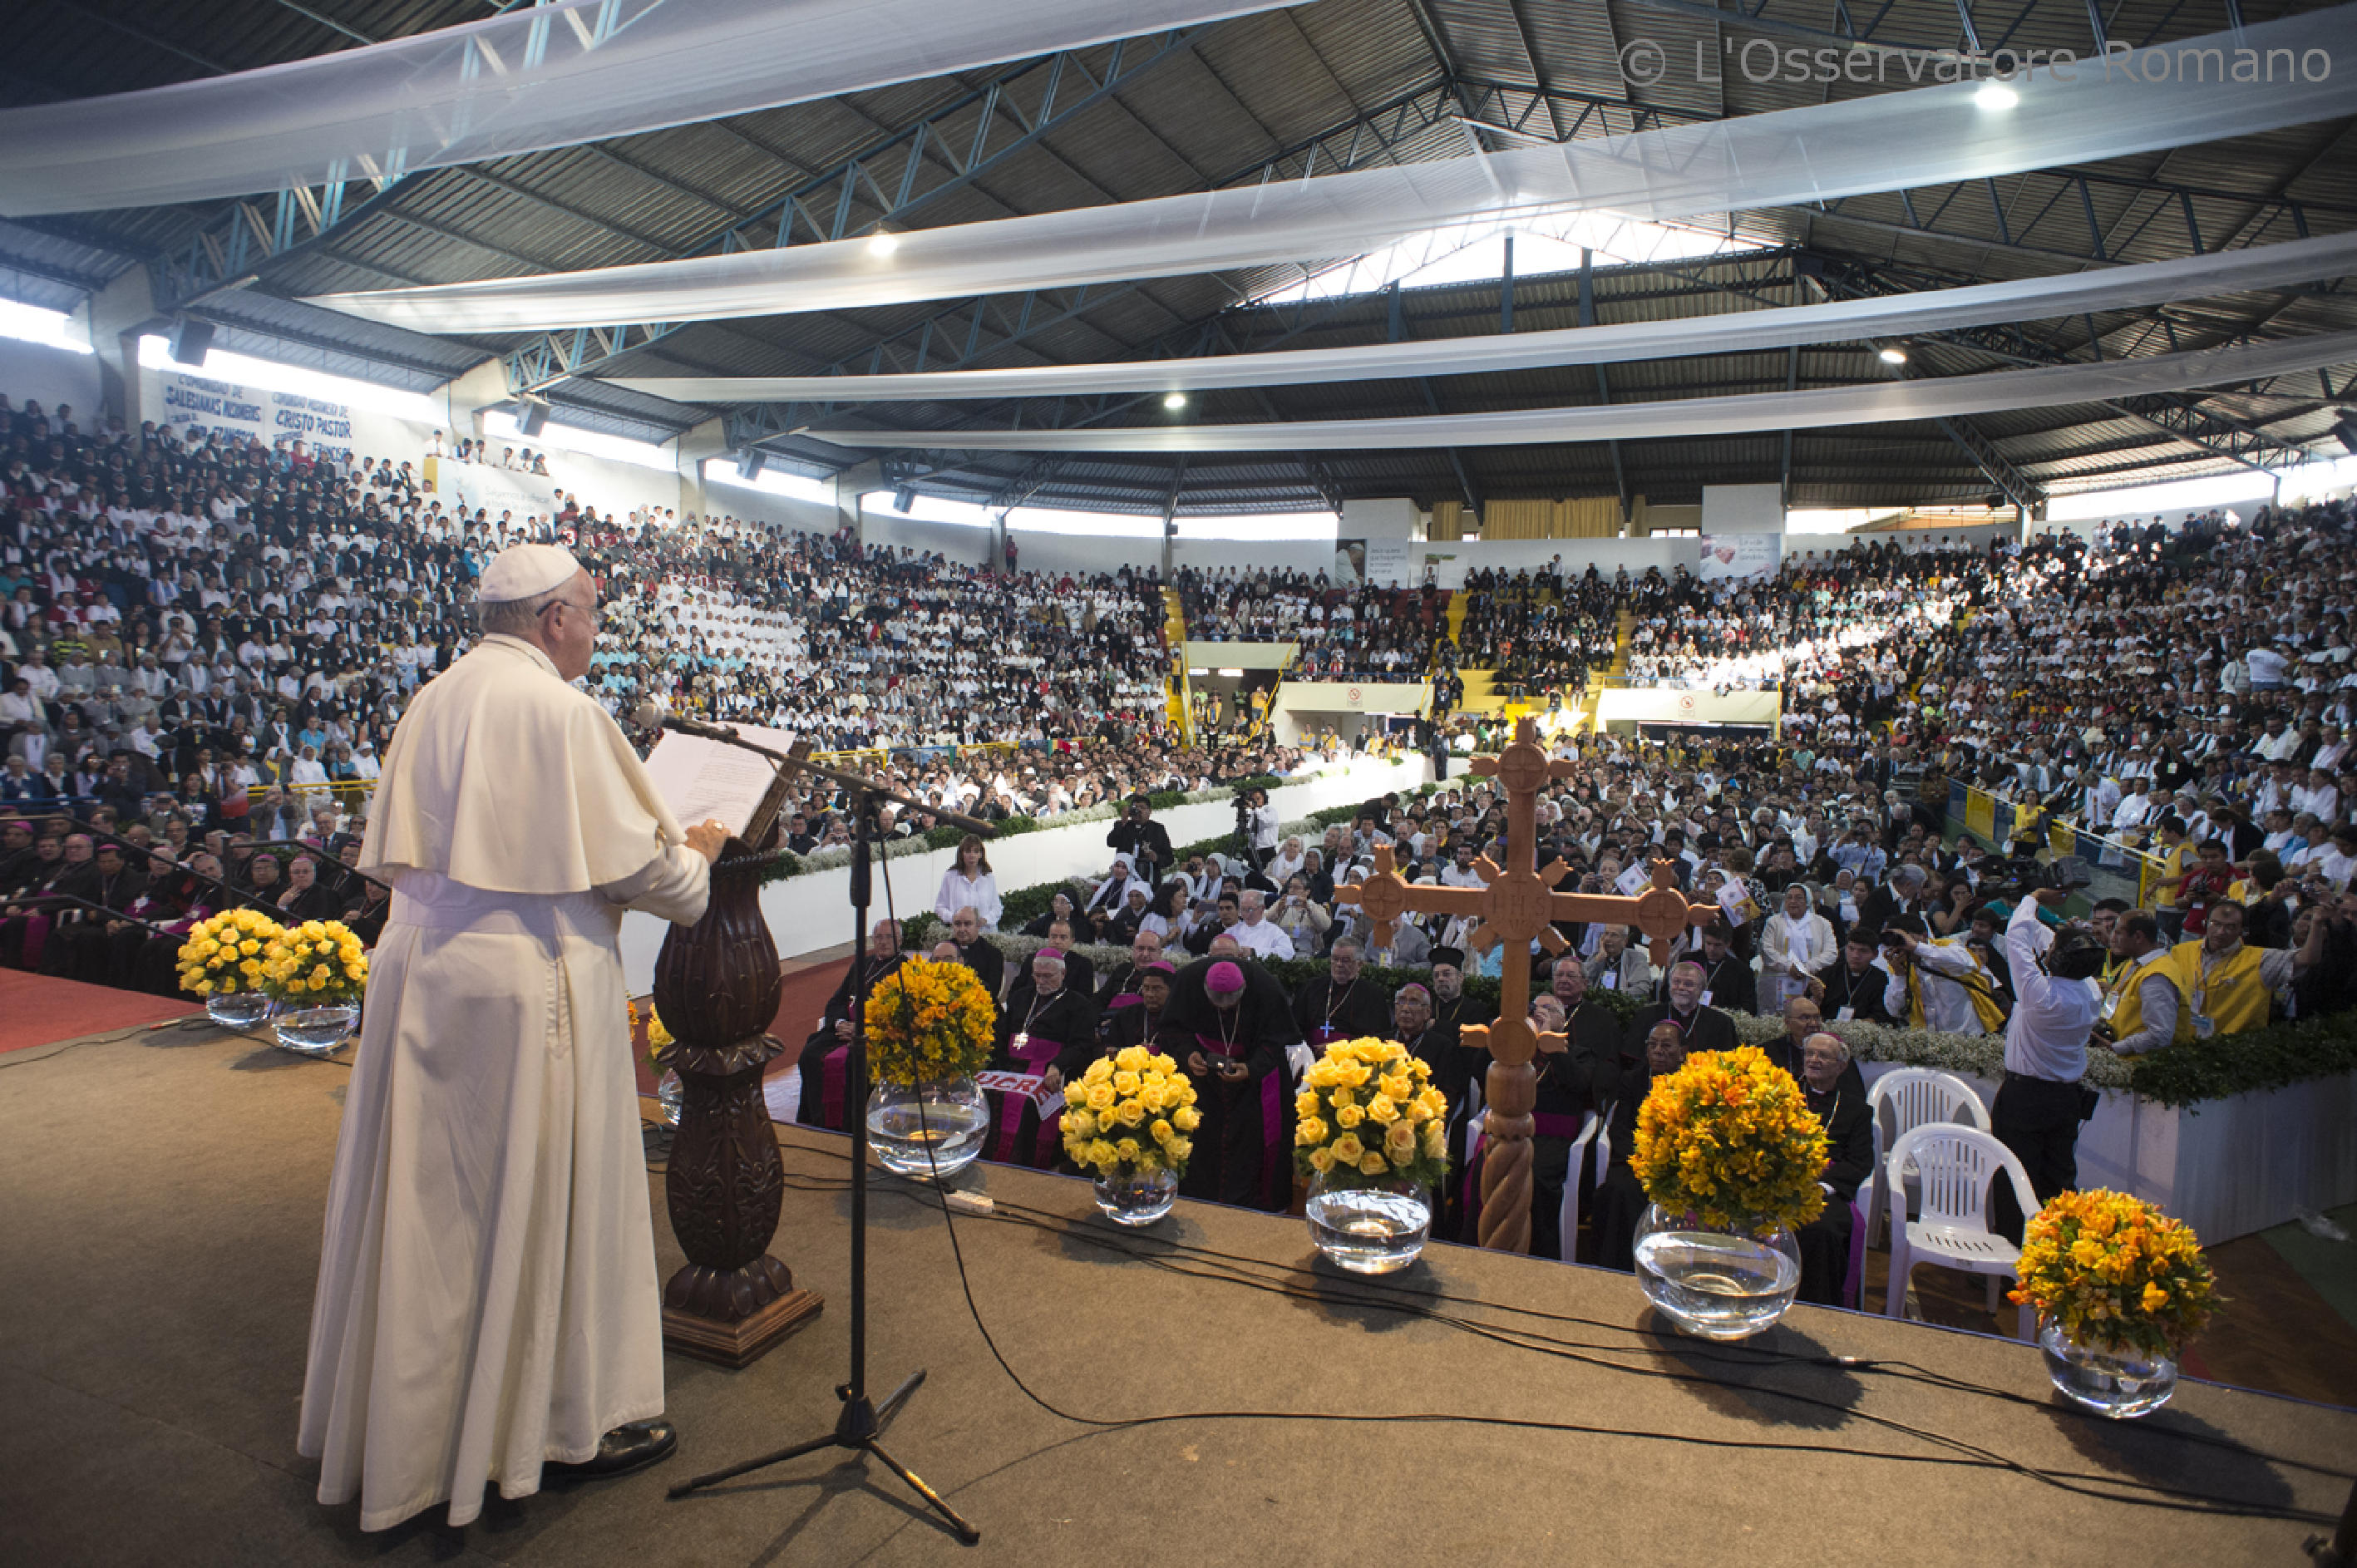 Pope Francis at the 2nd World Meeting of Popular Movements